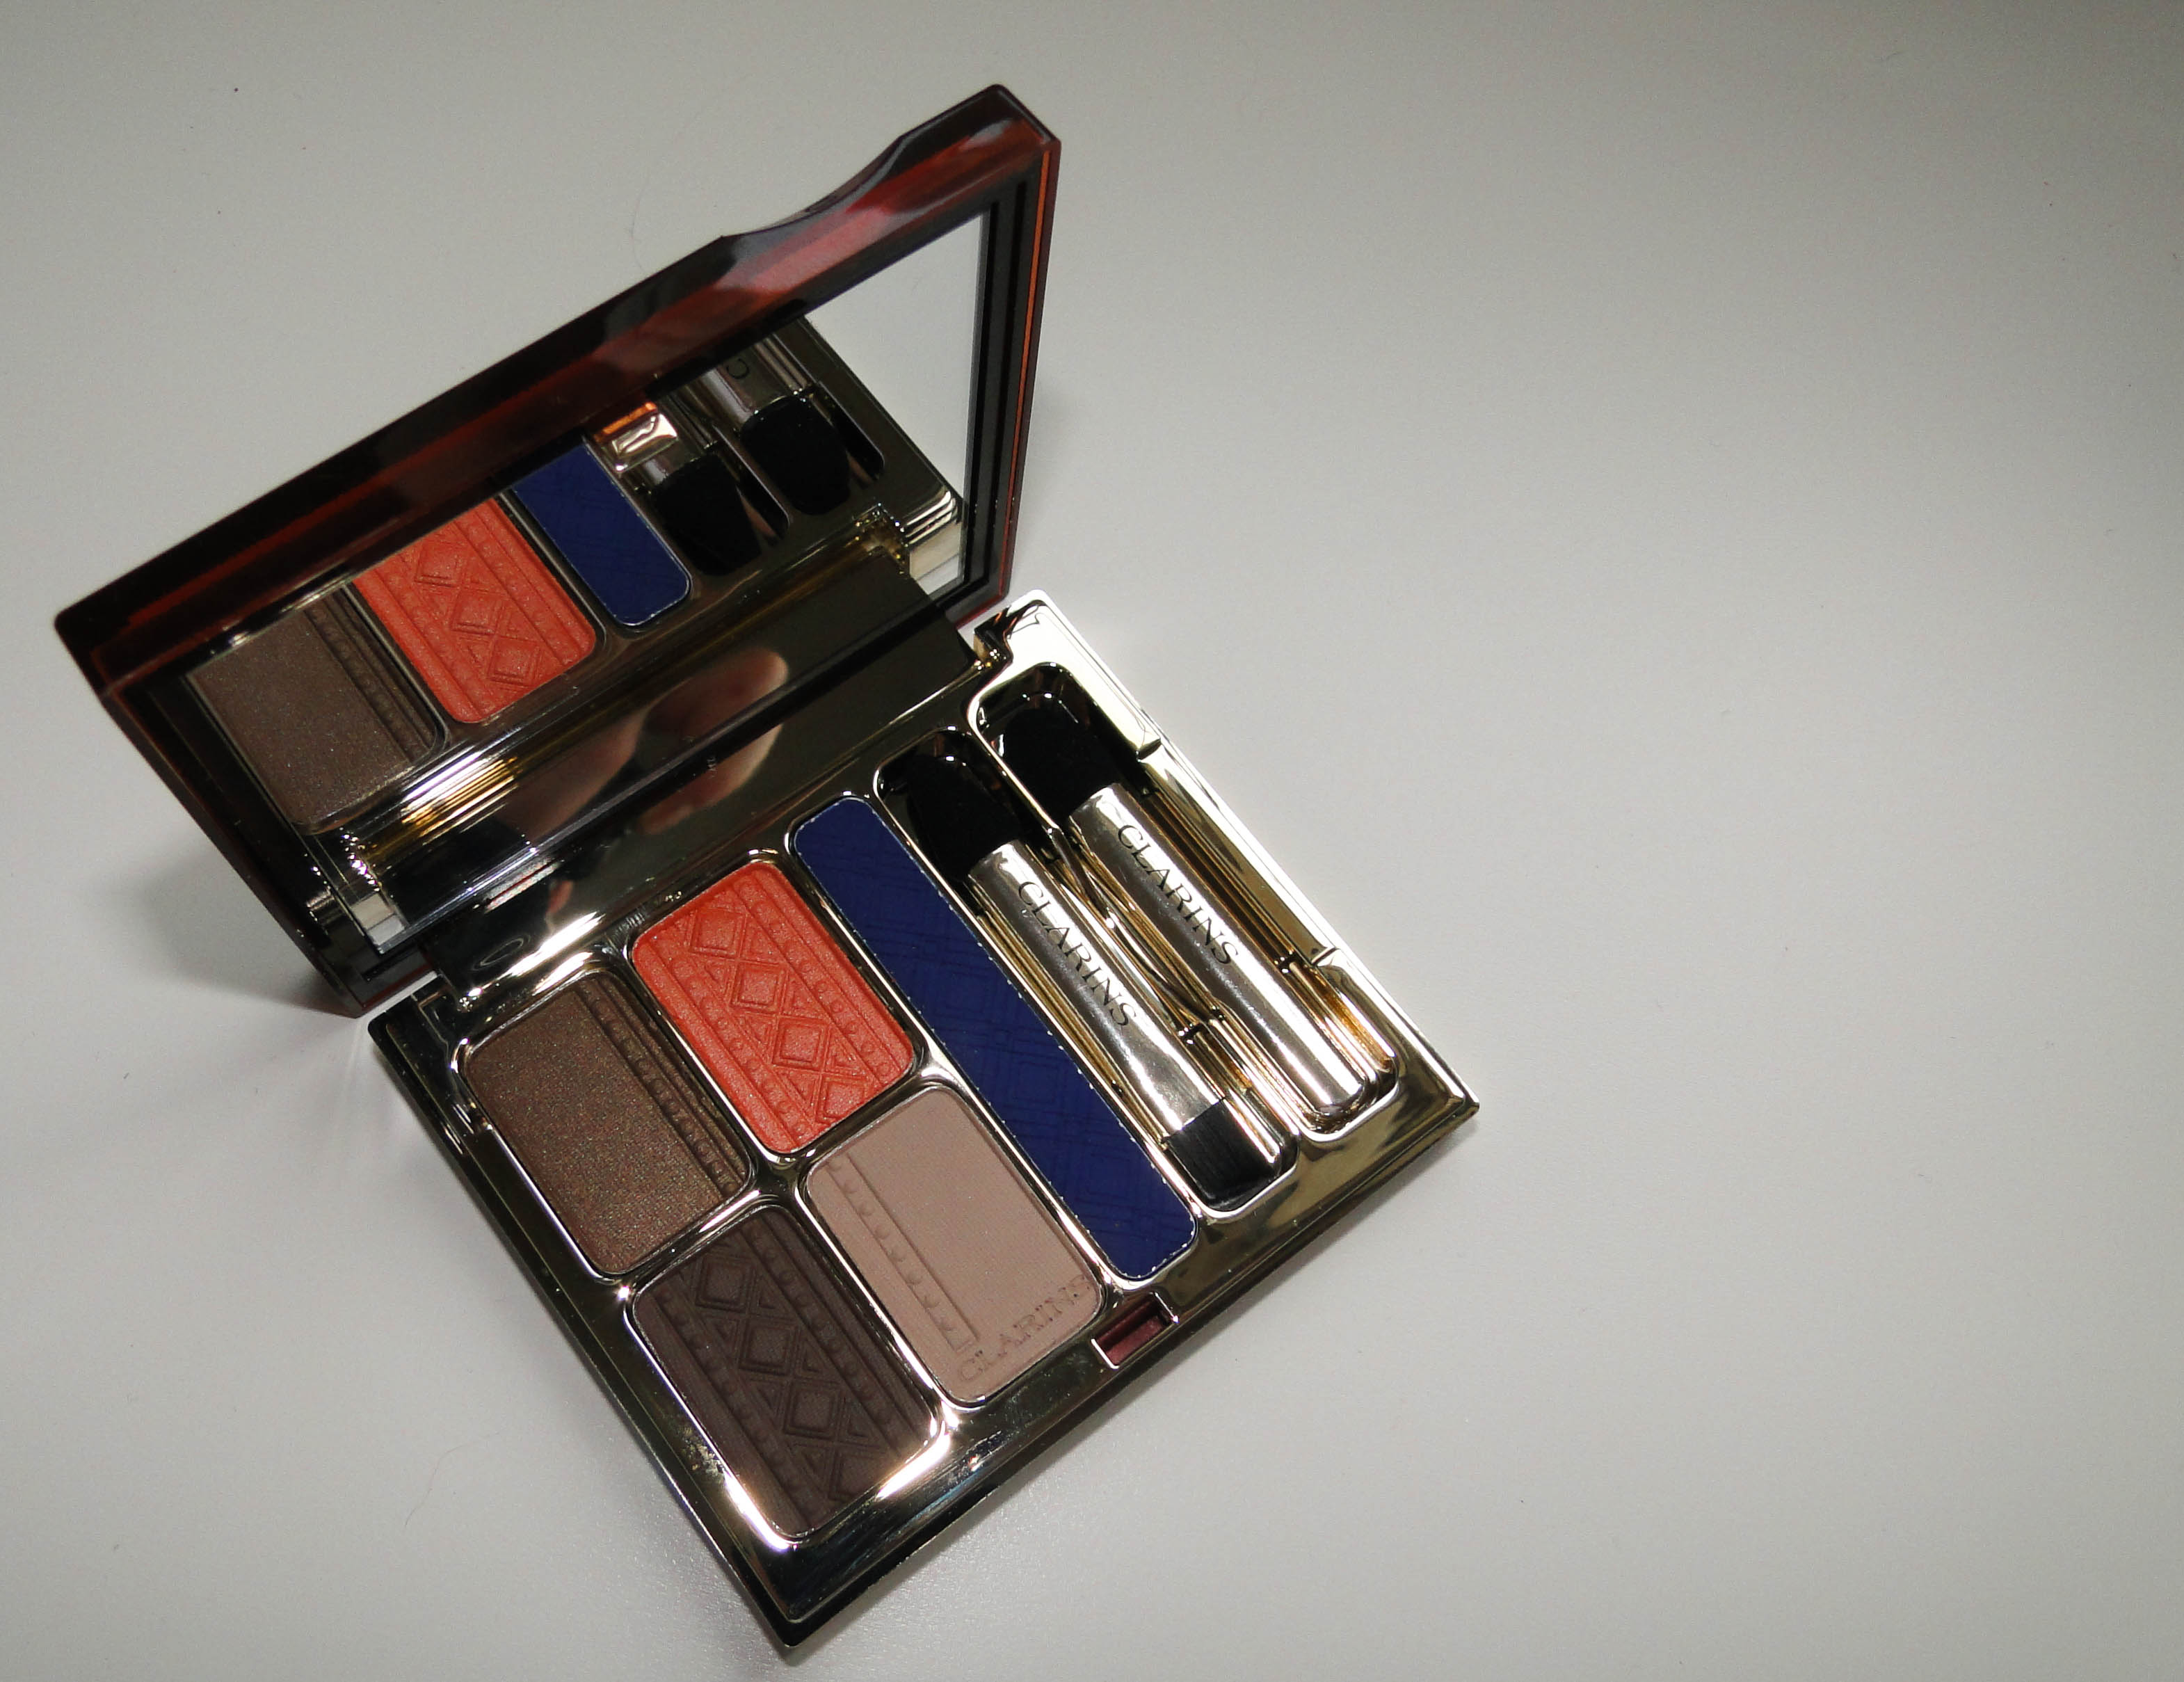 Clarins Color of Brazil Eye Quartet 2